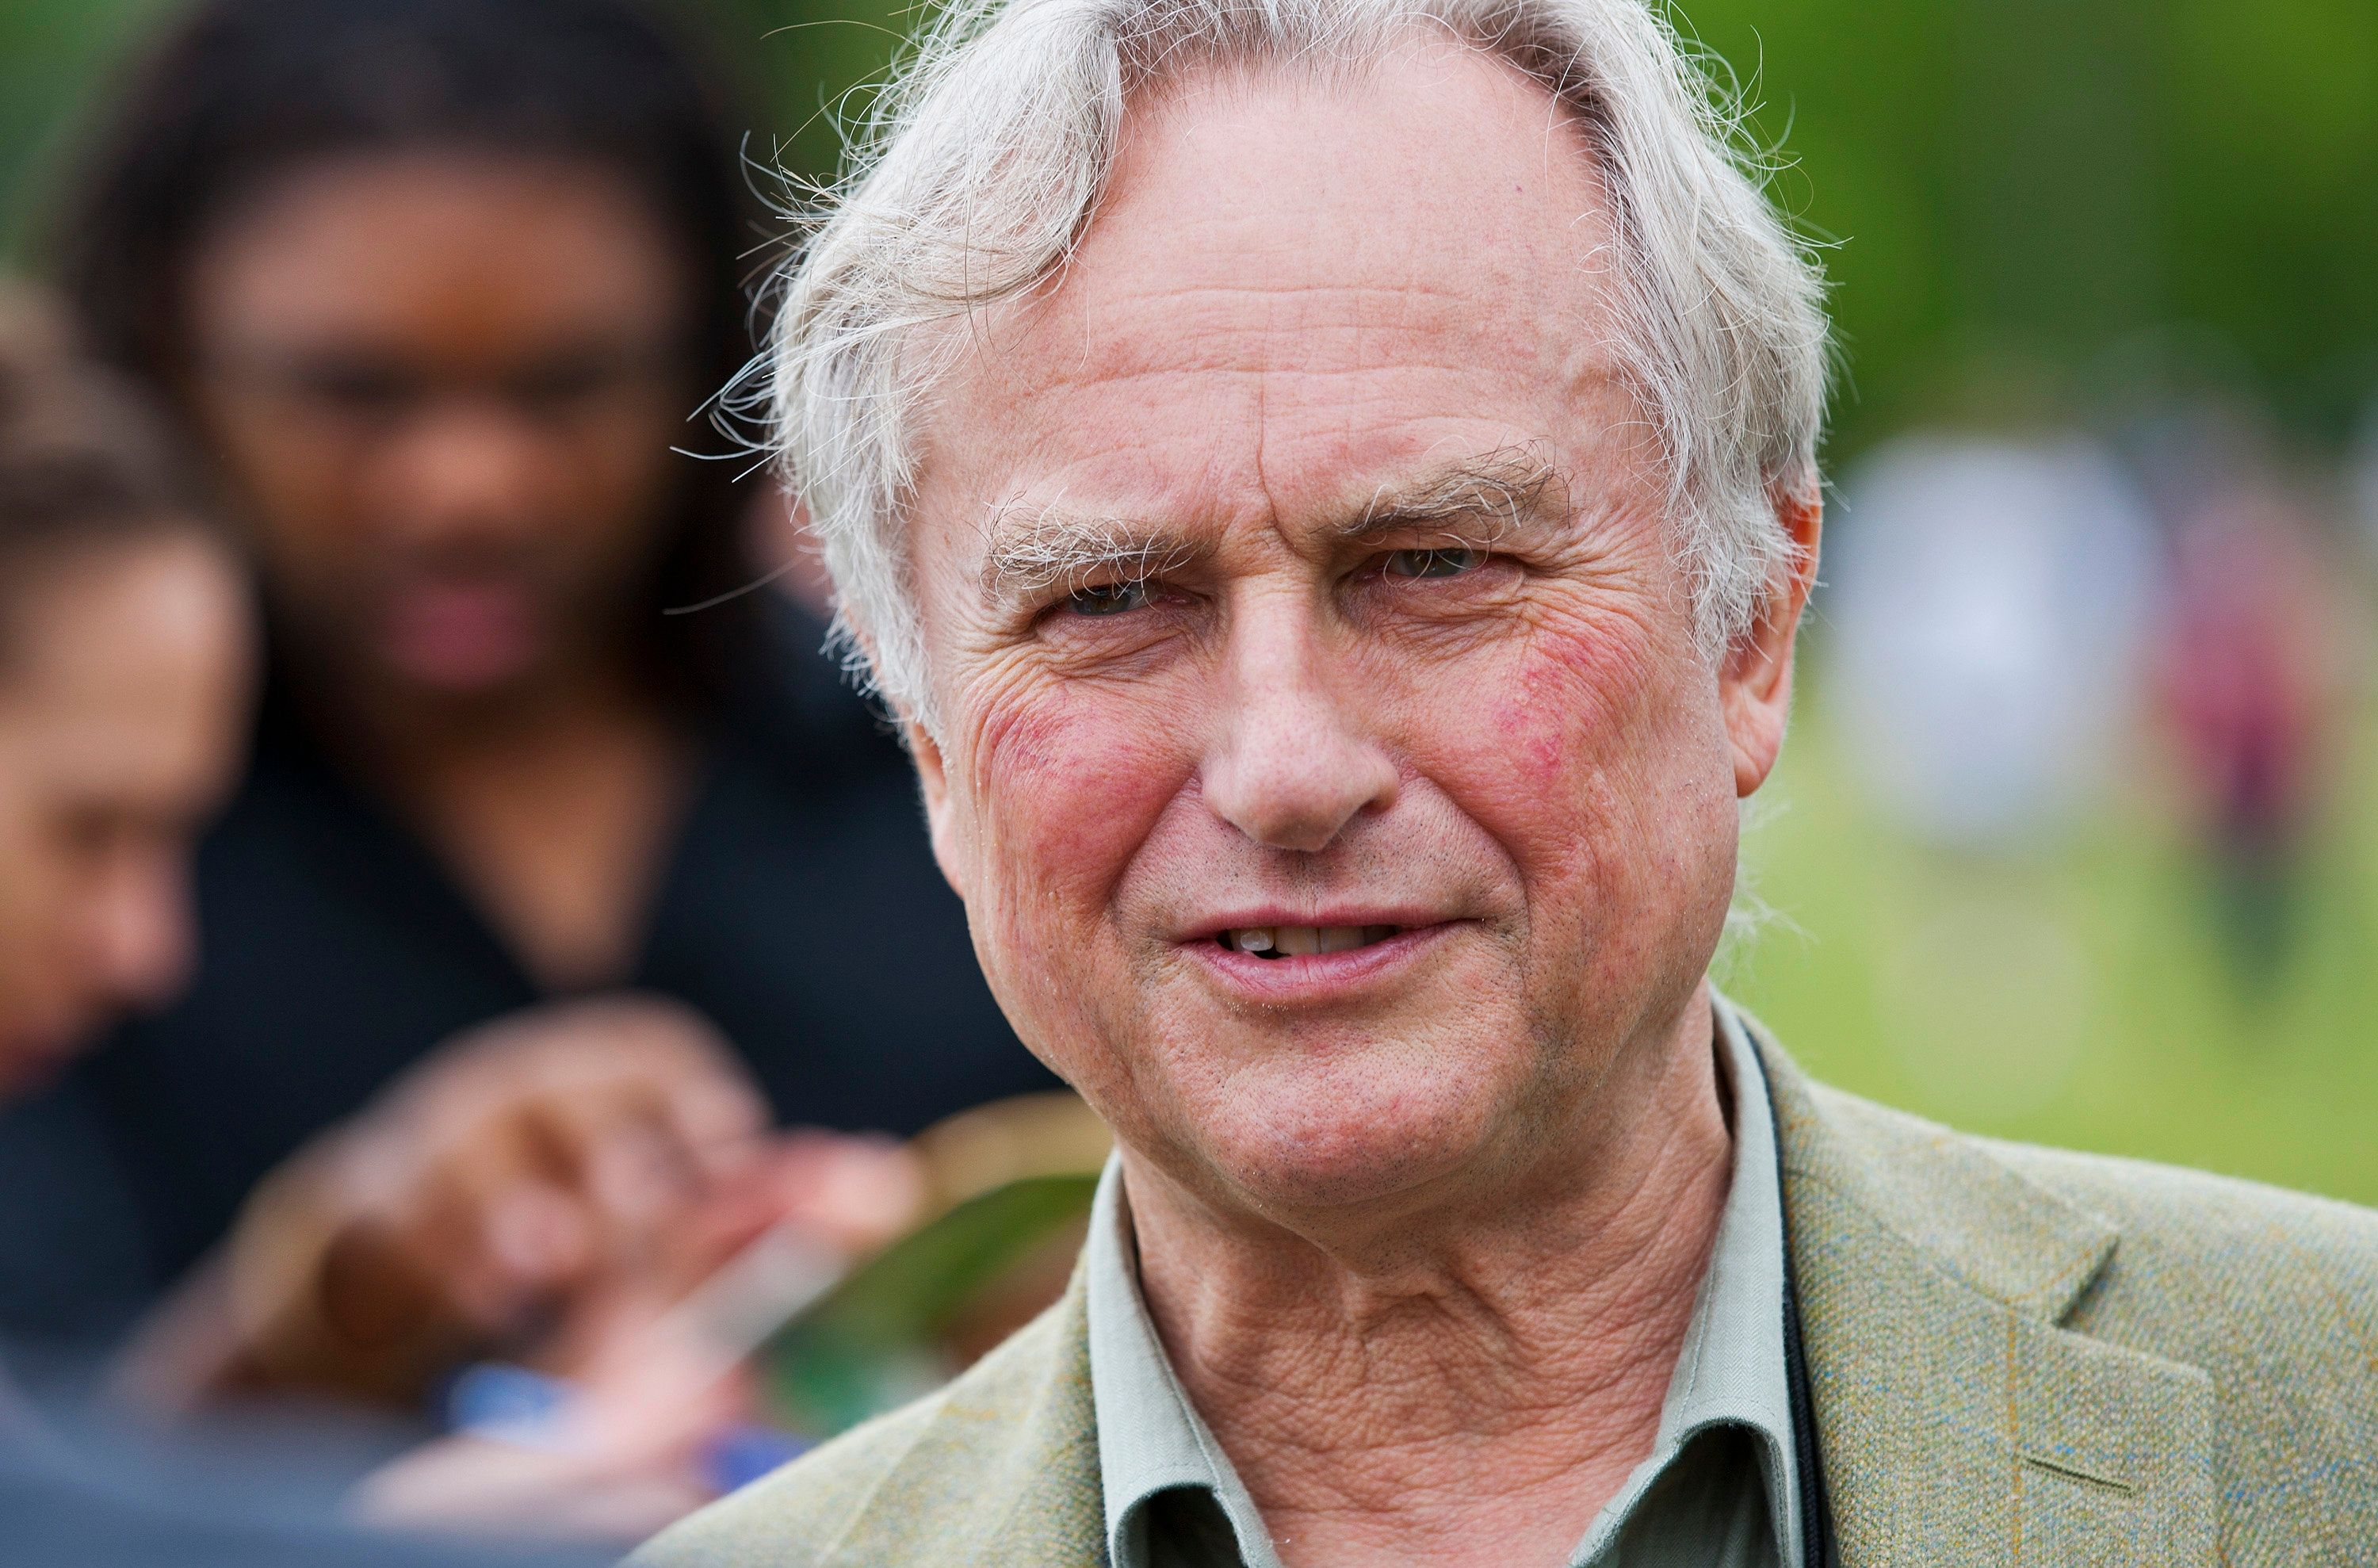 Richard Dawkins Is Still Tweeting About Islam And It's Not Going Very Well For Him